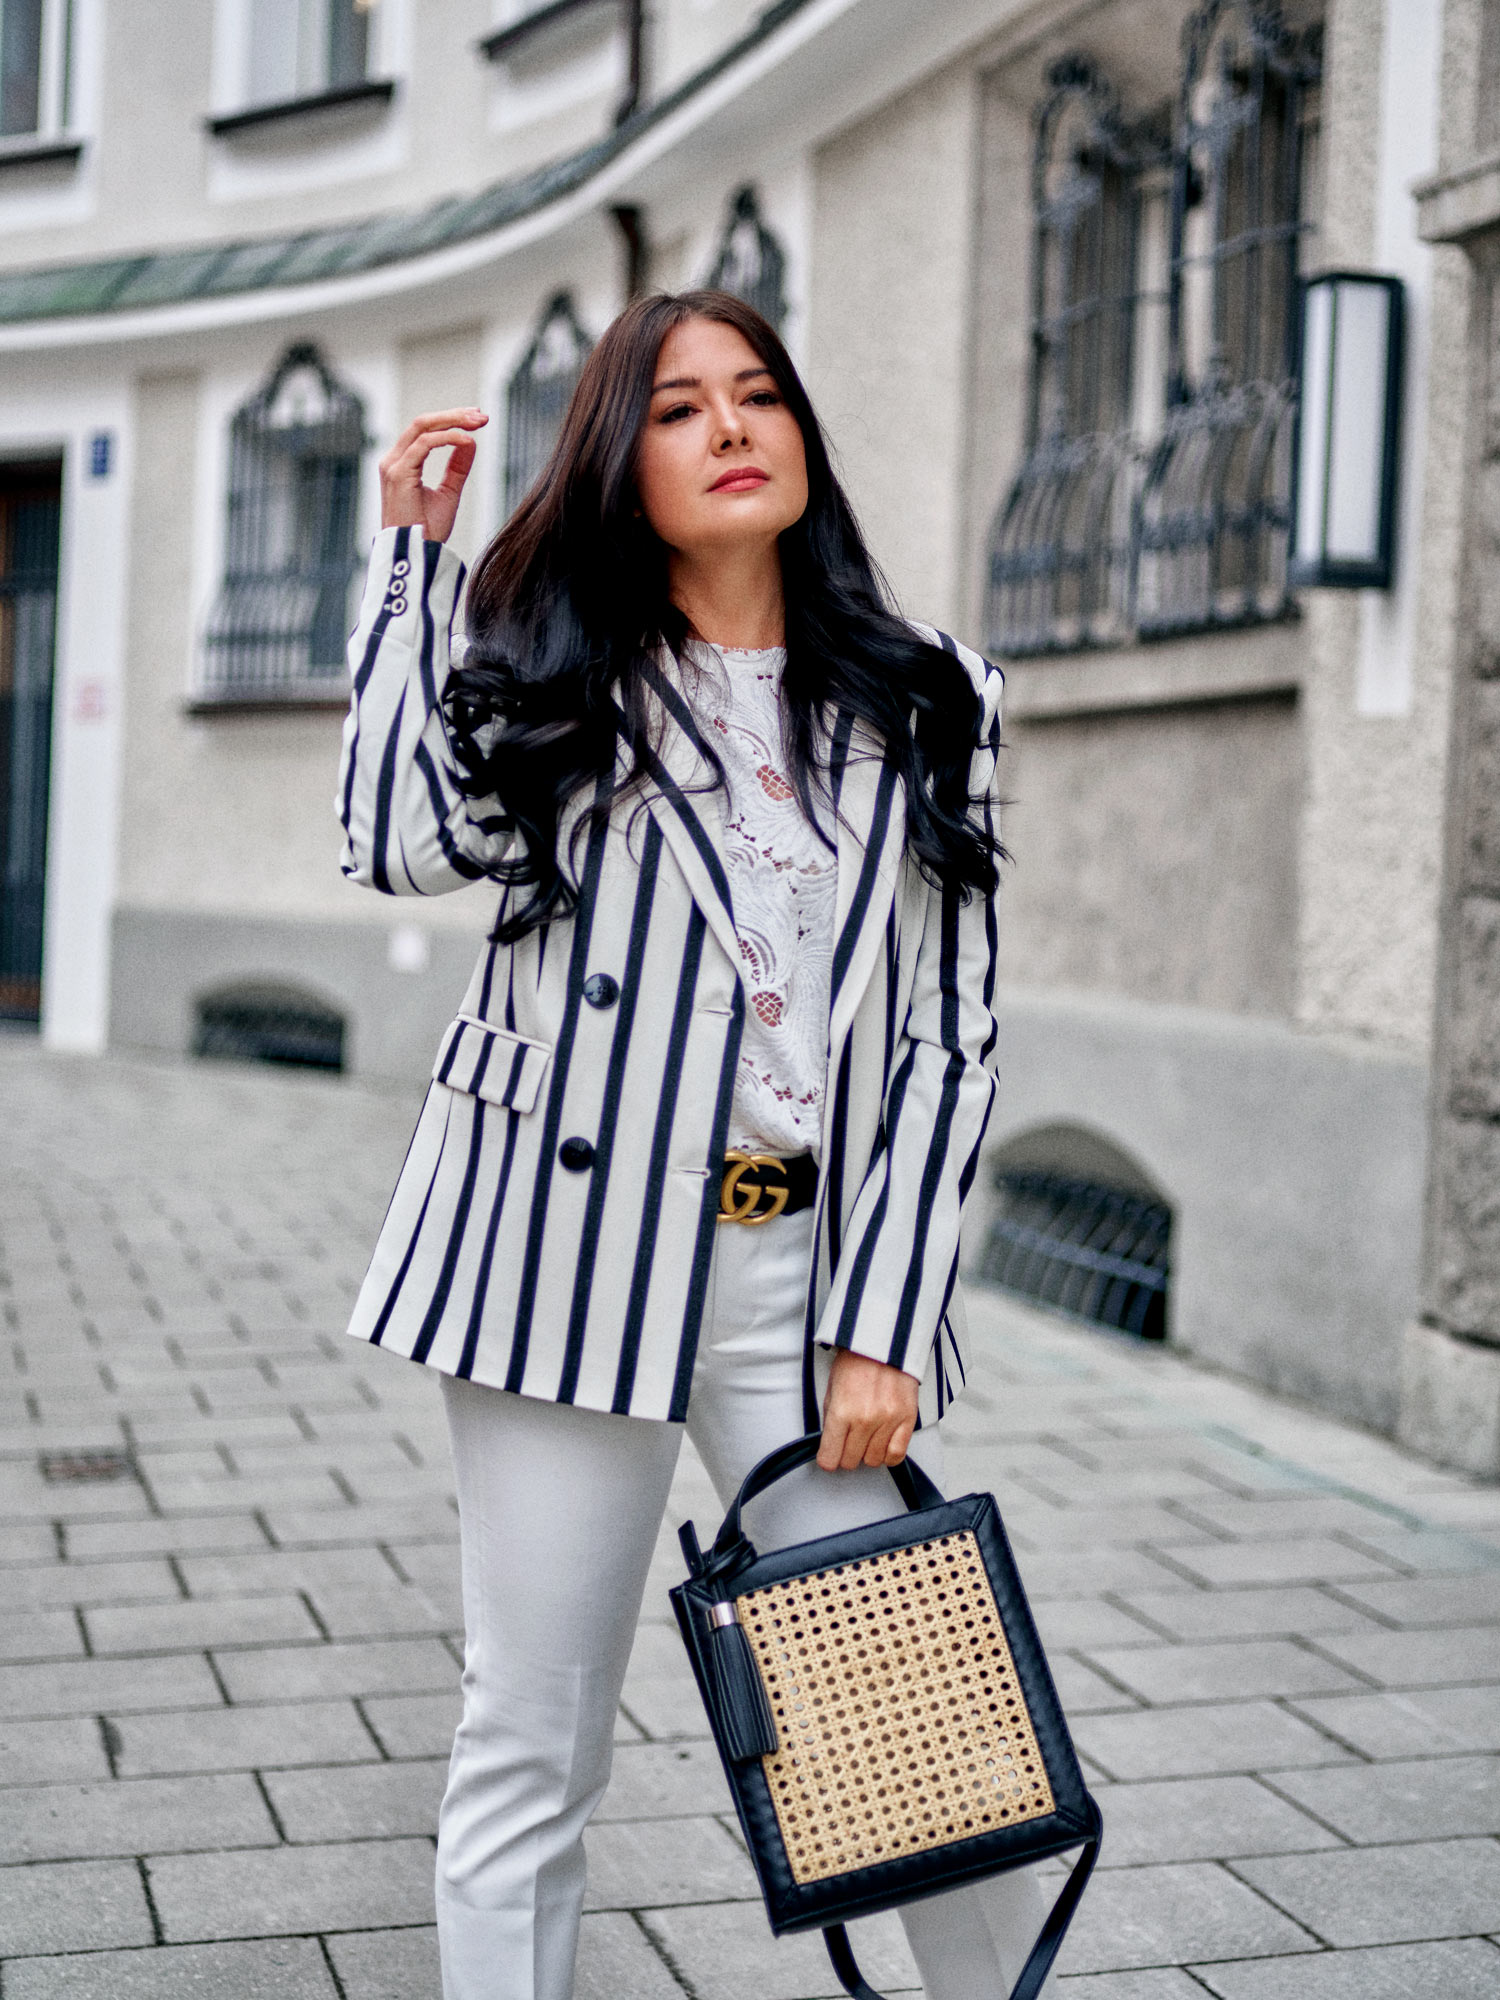 fashion-blogger-aus-muenchen-fashionblogger-lifestyleblogger-beautyblogger-fashion-blogger-modeblogger-modeblog-munich-blog-muenchen-geflochtene-handtaschen-und-schuhe-im-trend